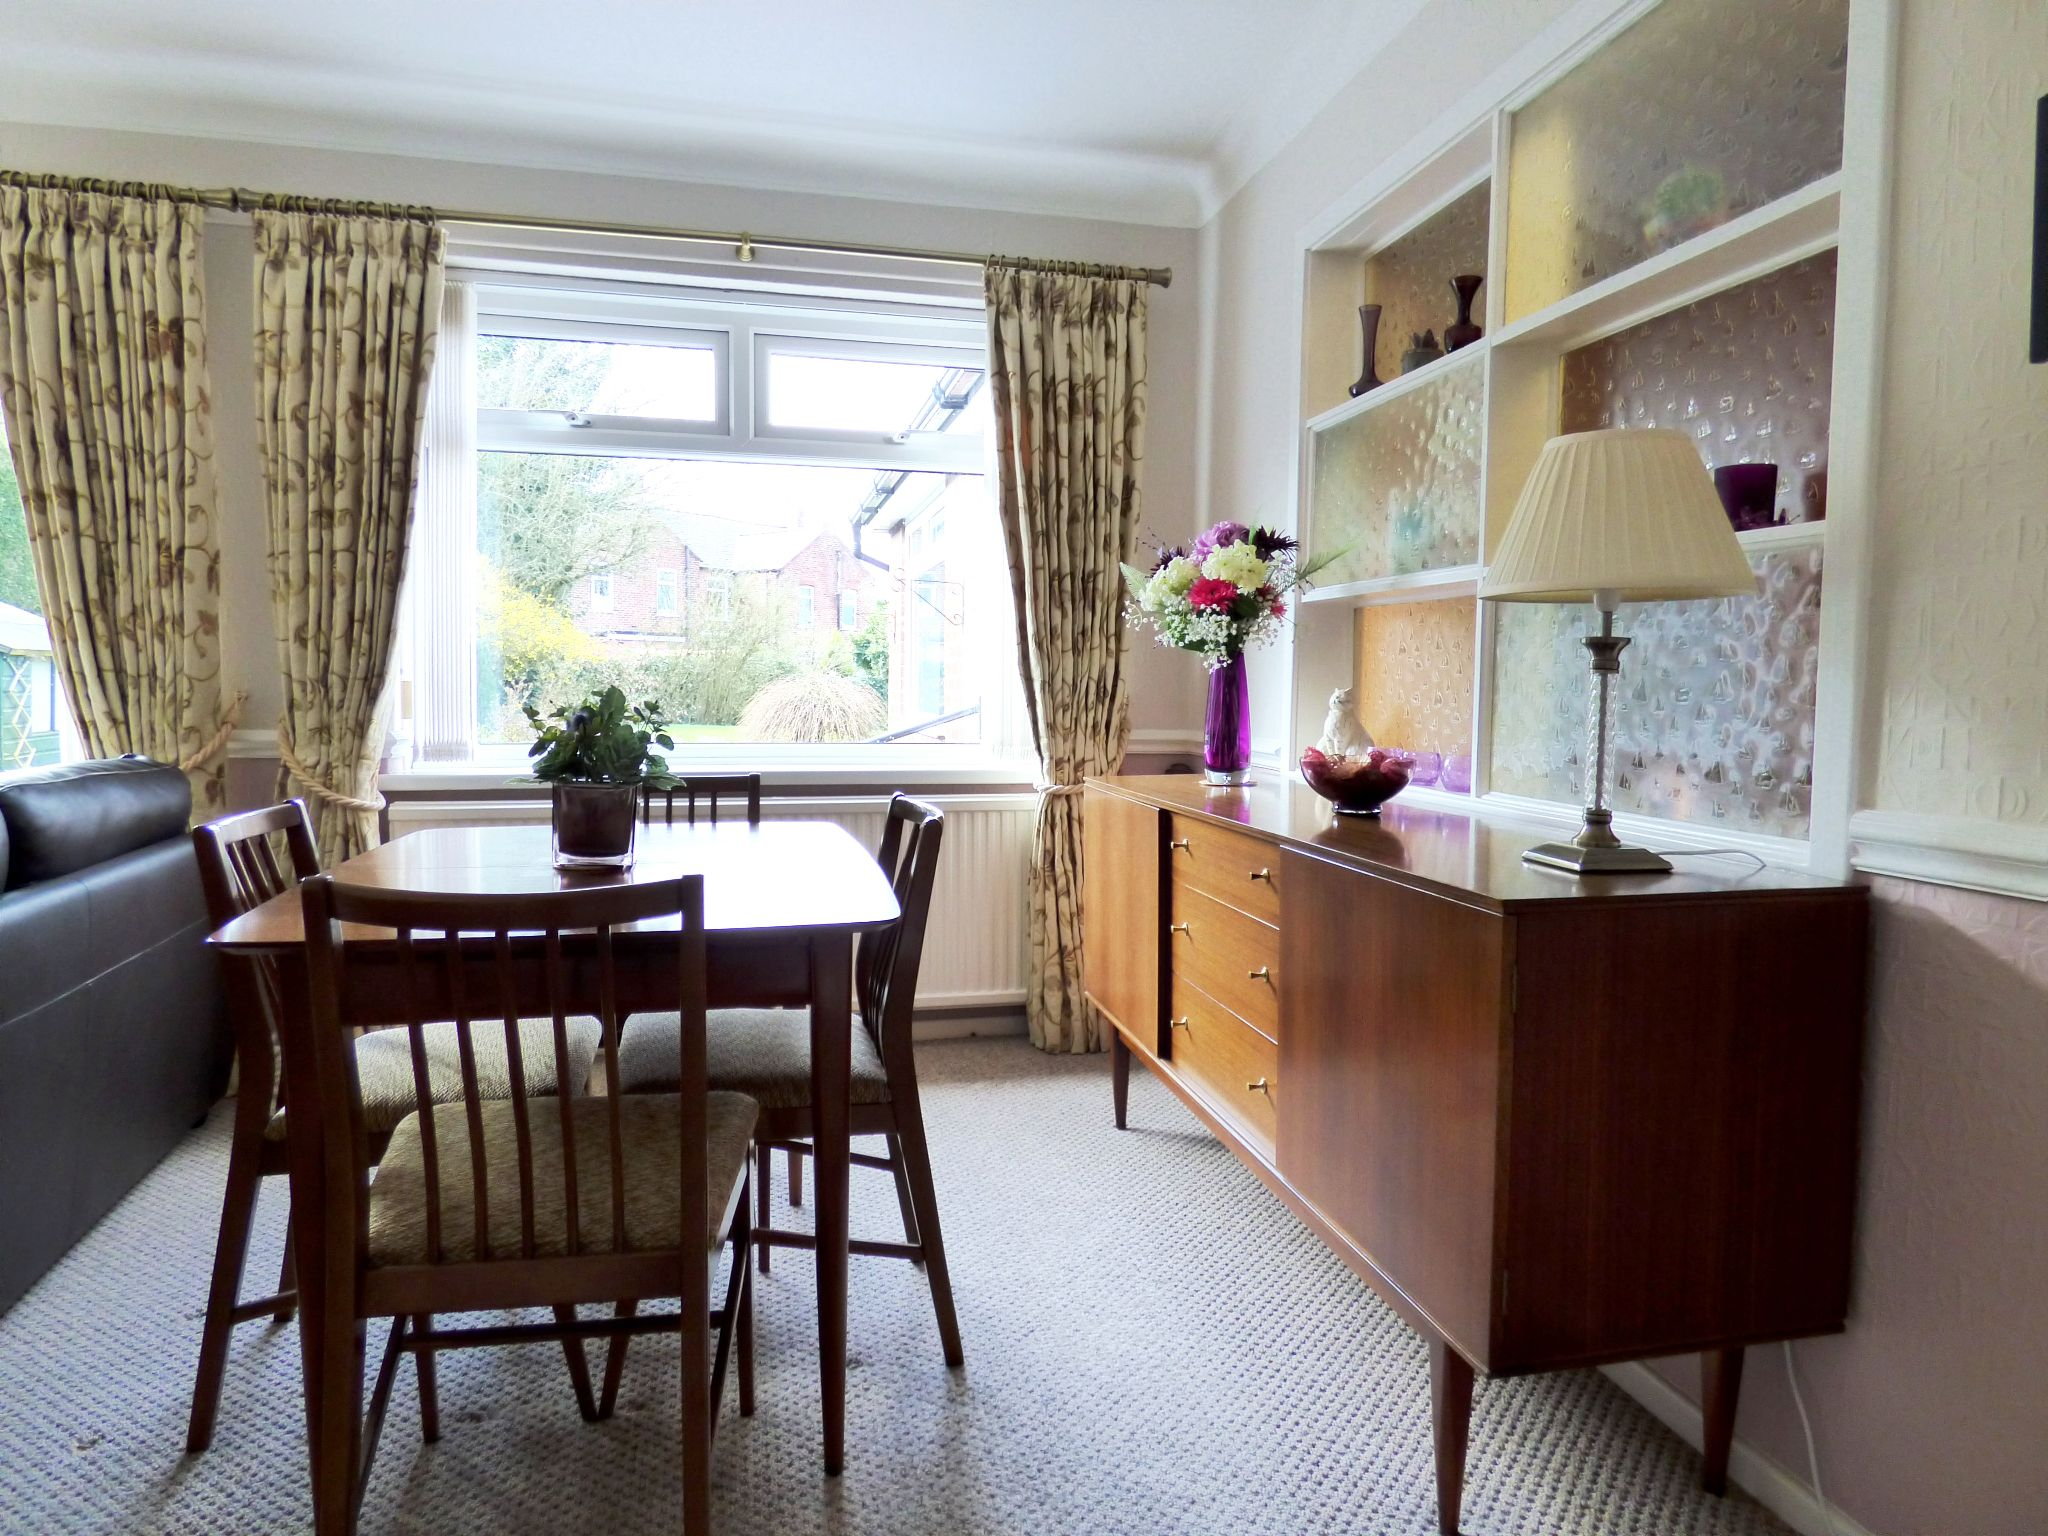 4 Bedroom Detached Bungalow For Sale - Dining Area